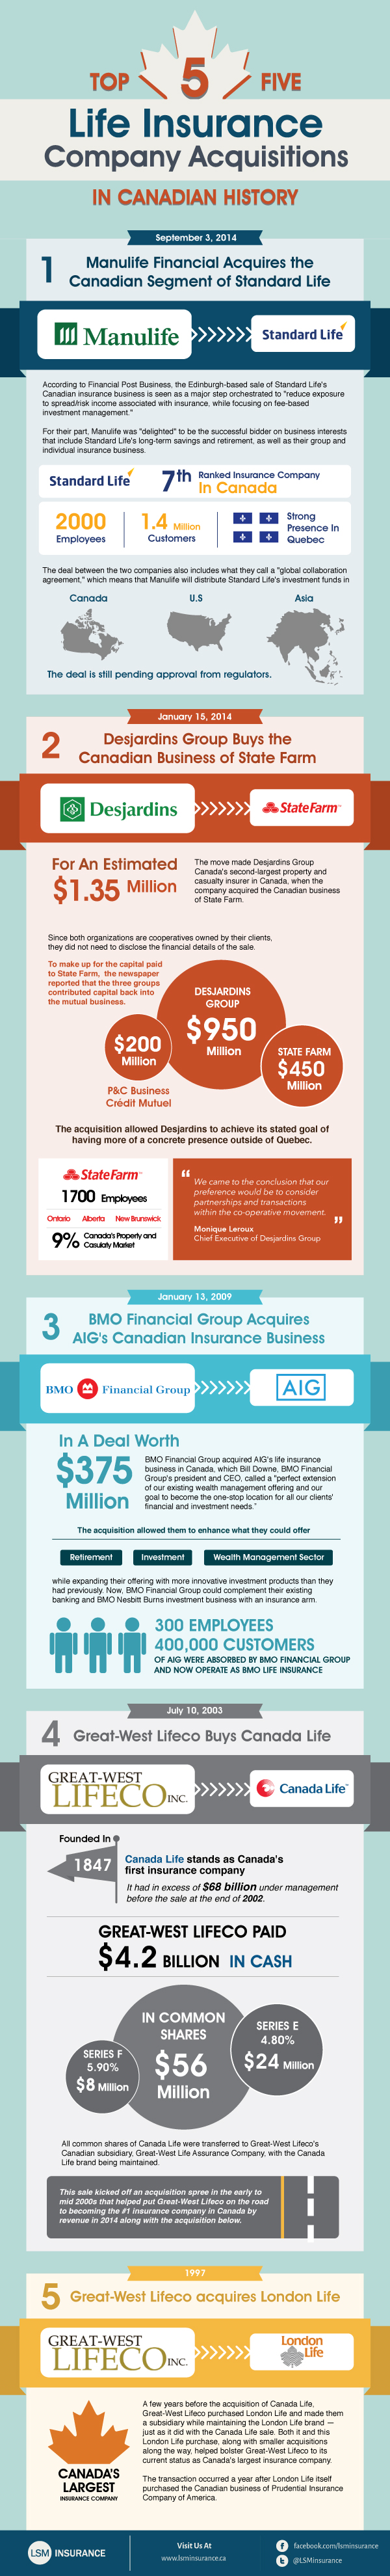 Top-5-Life-Insurance-Company-Acquisitions-in-Canadian-History-infographic-plaza